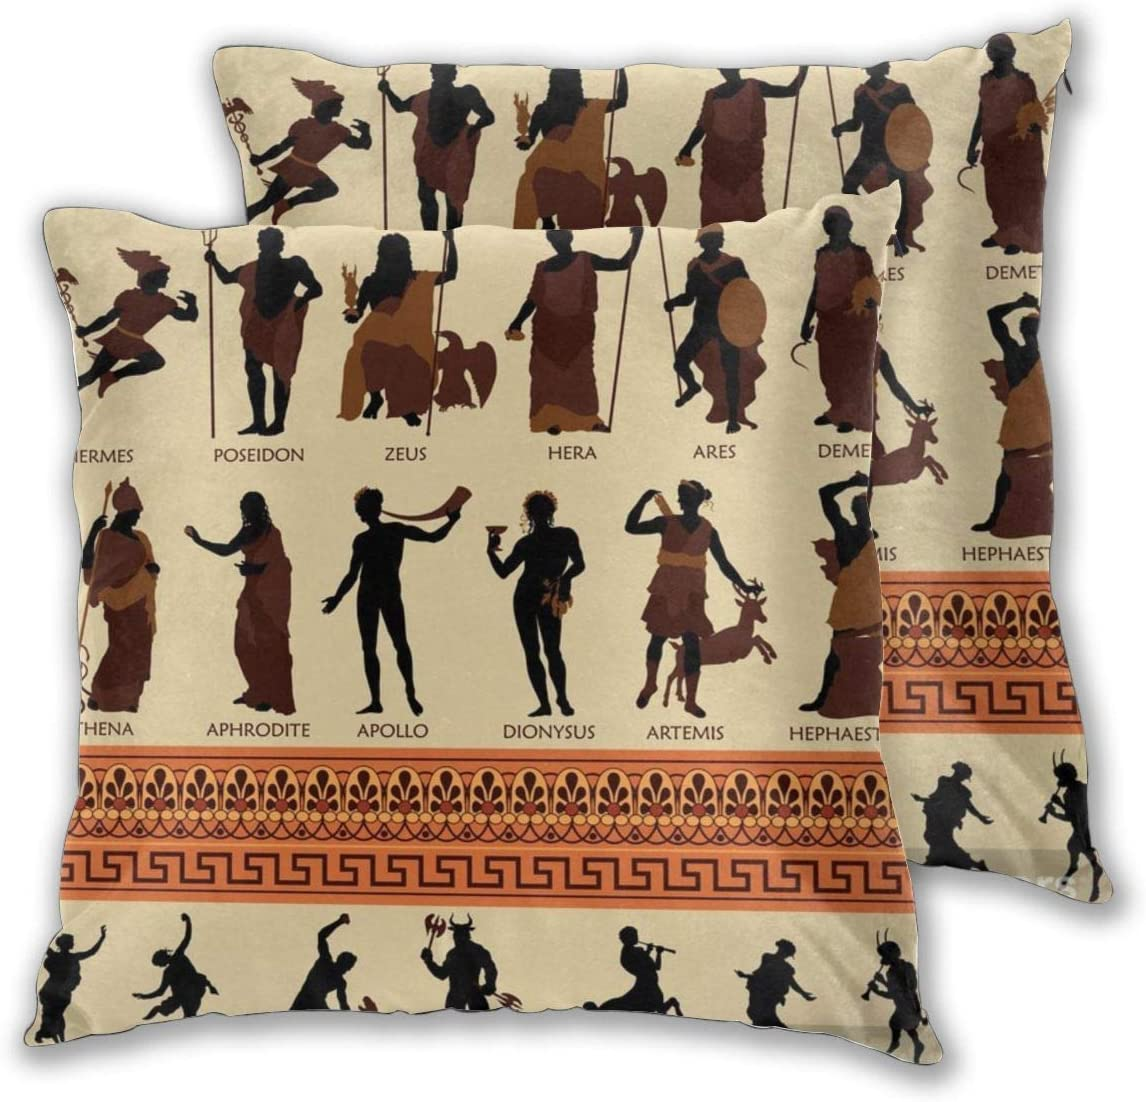 Dani House All Greek Gods And Ancient Mythology Throw Pillow Covers Cushion Cover Set Of 2 16x16 Inch Home Kitchen